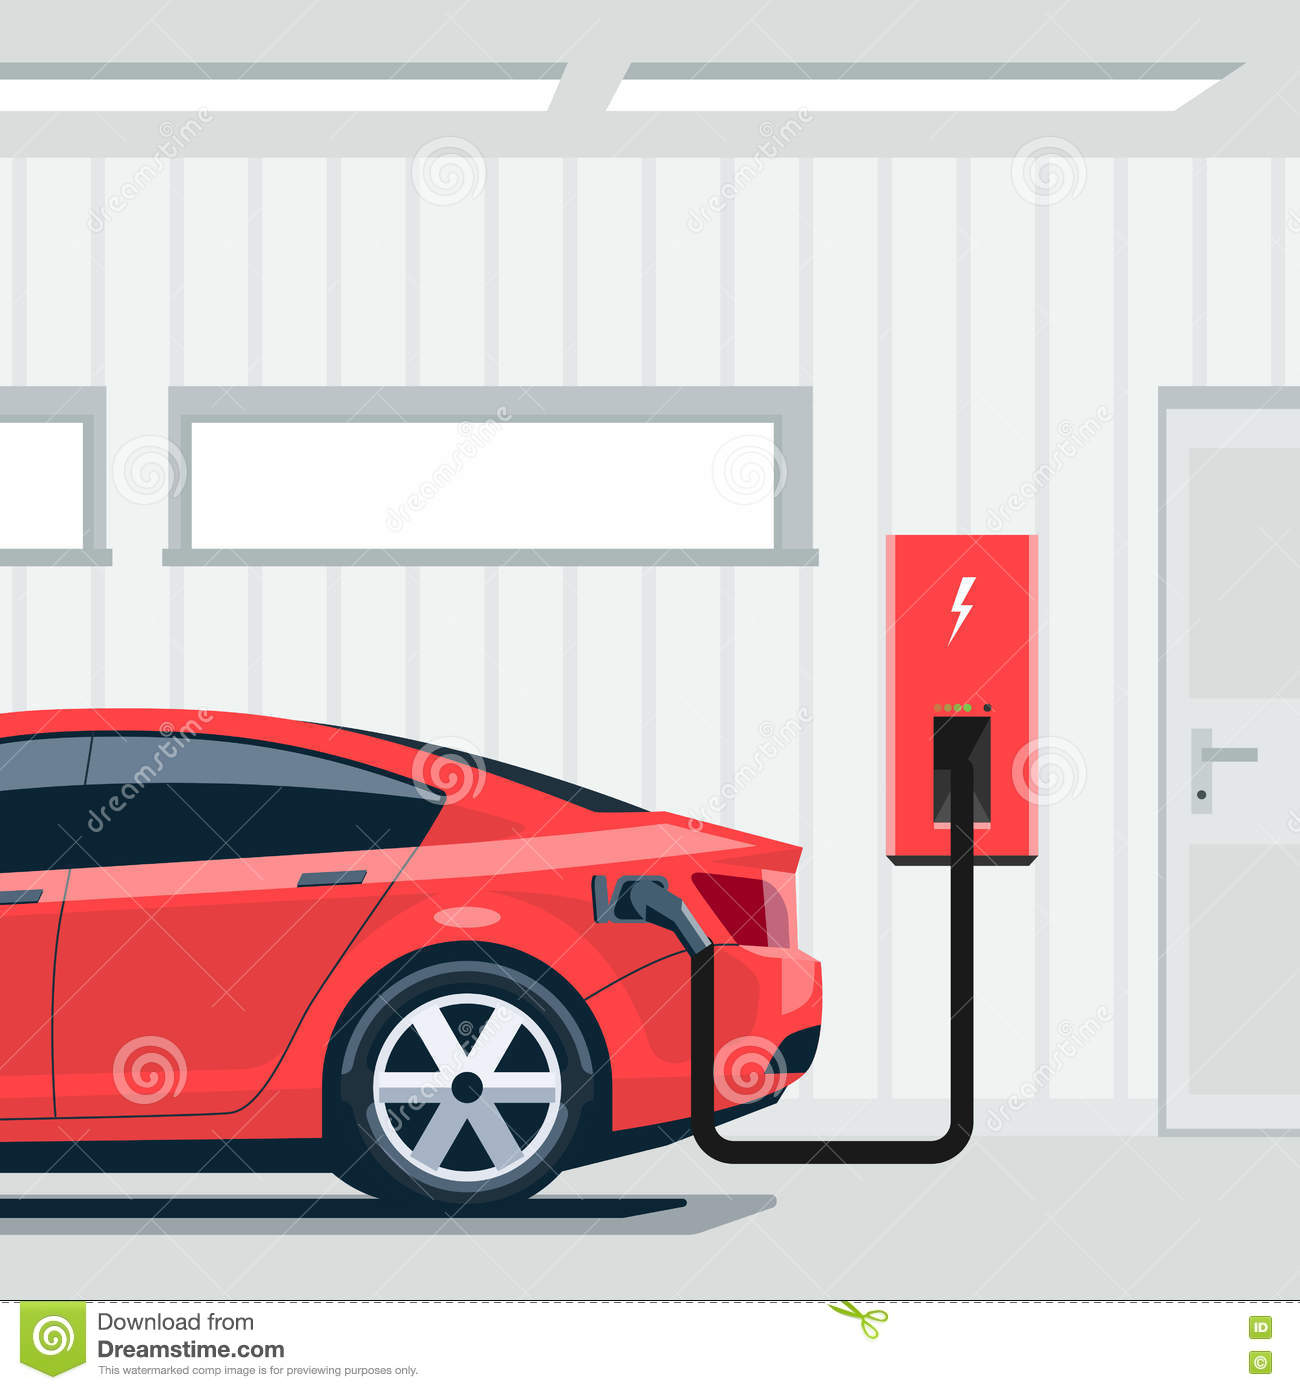 Electric Car Charging Station Conept